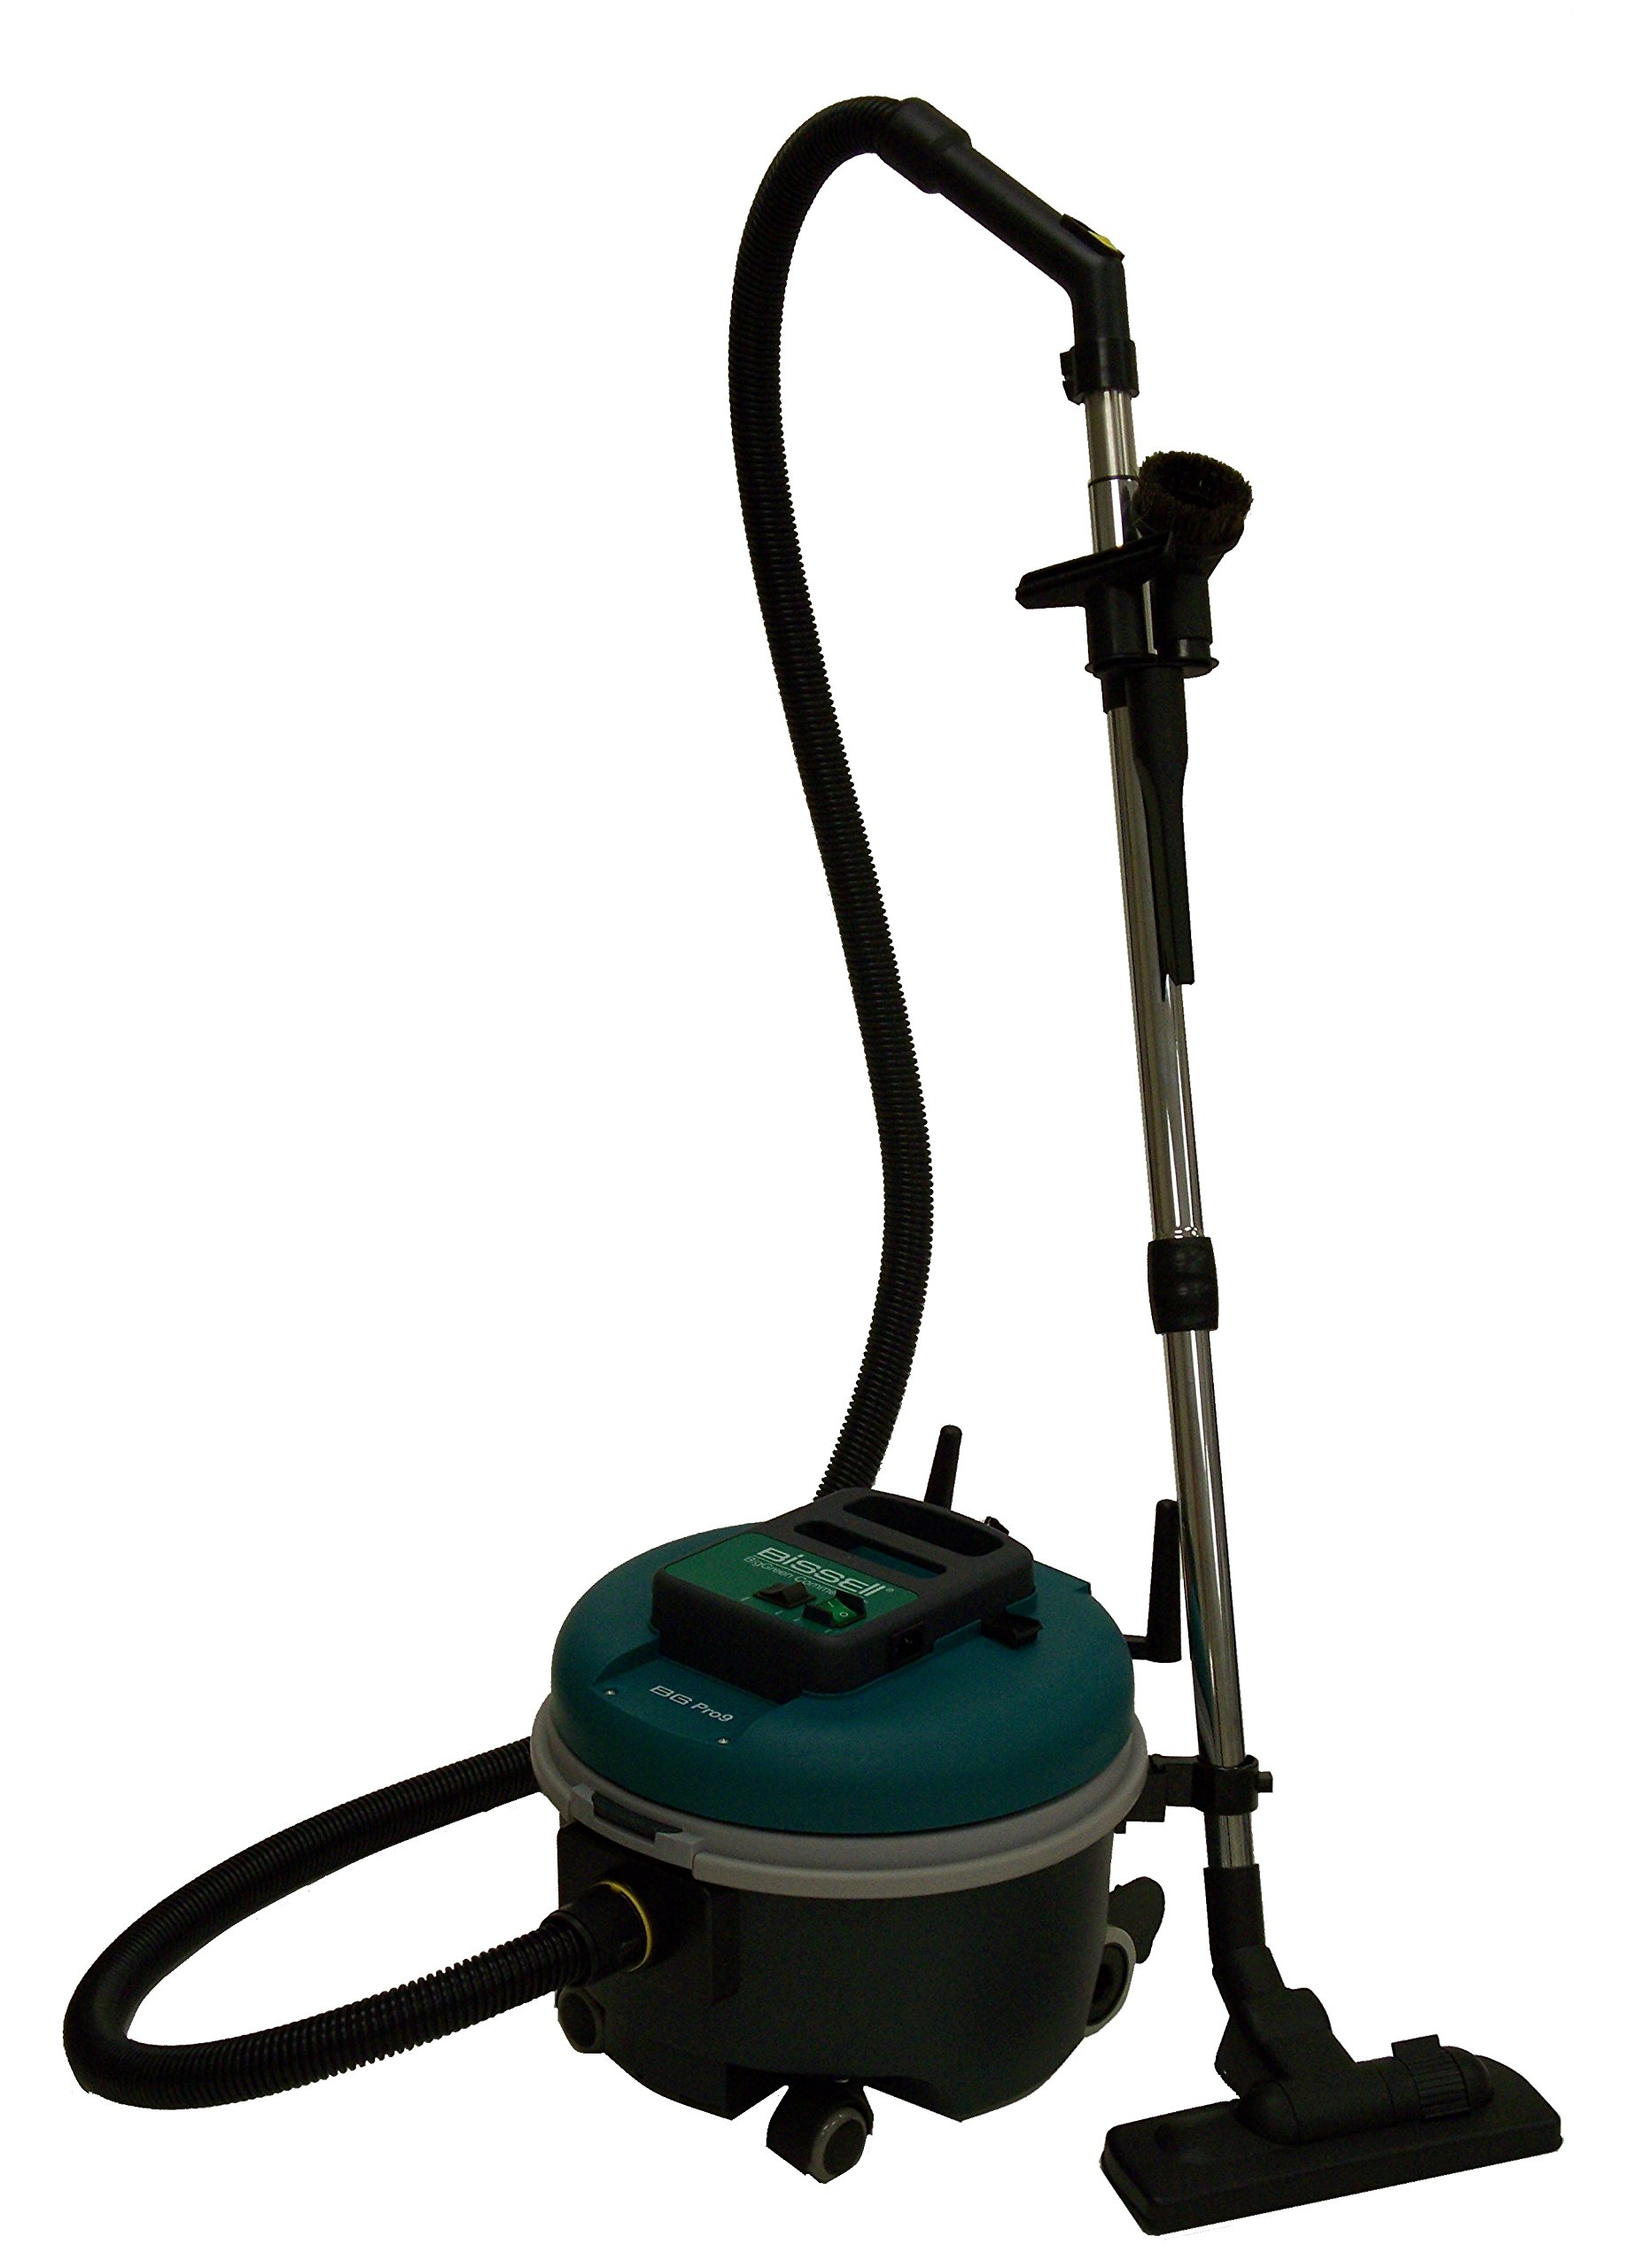 BISSELL BigGreen Commercial Bagged Canister Vacuum, 7.3L Bag Capacity, Green by Bissell